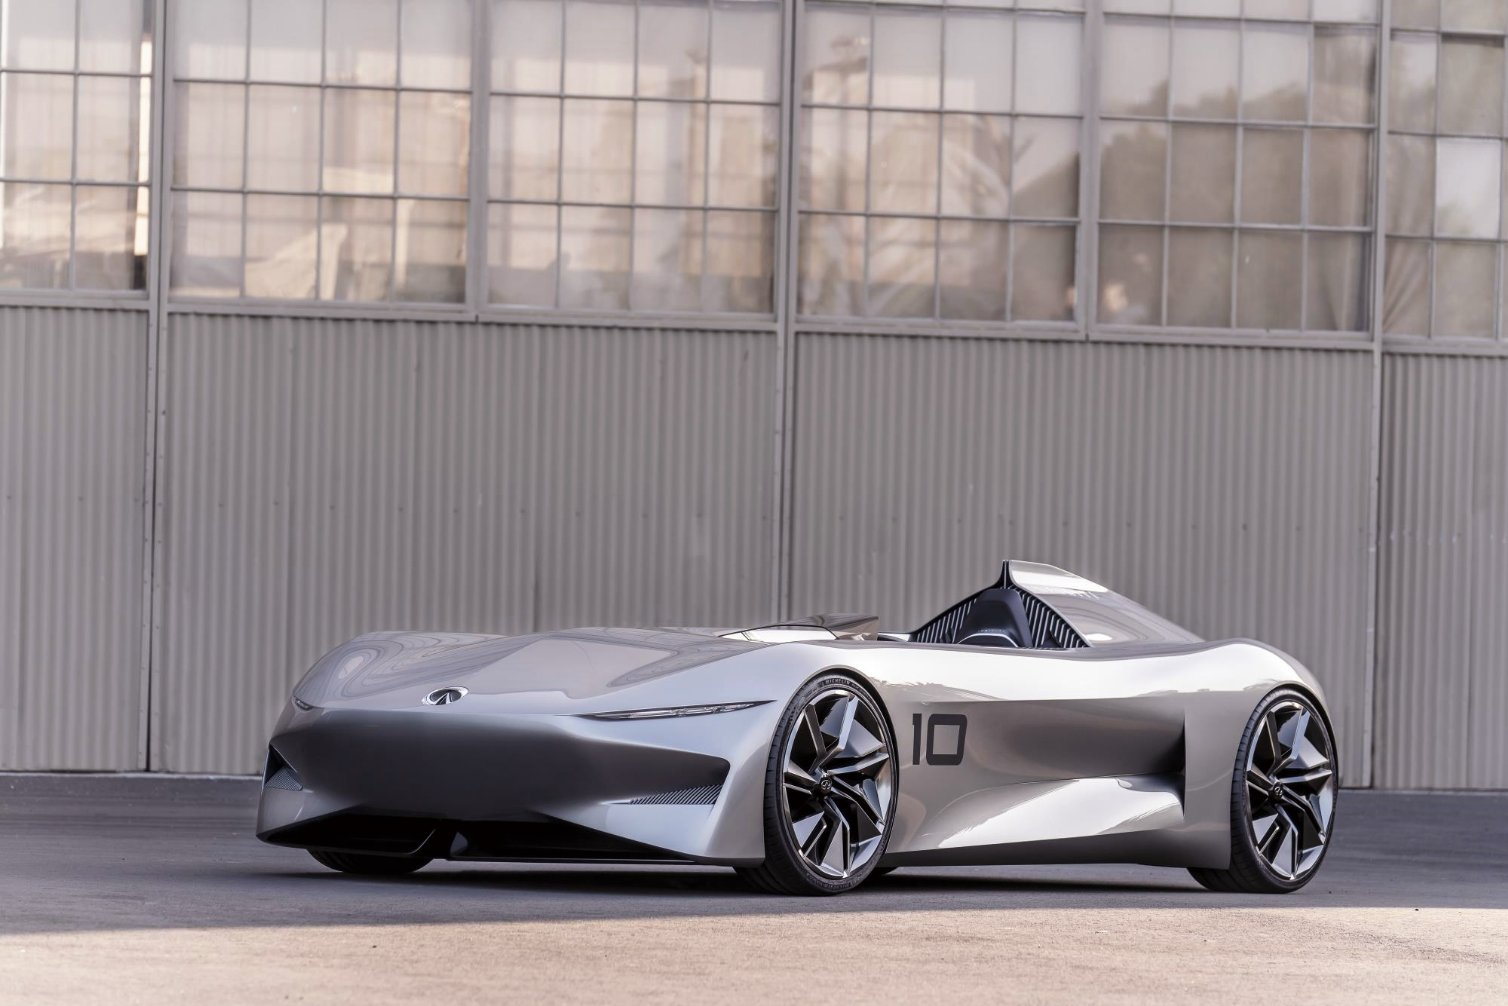 Infiniti Prototype 10 concept vehicle